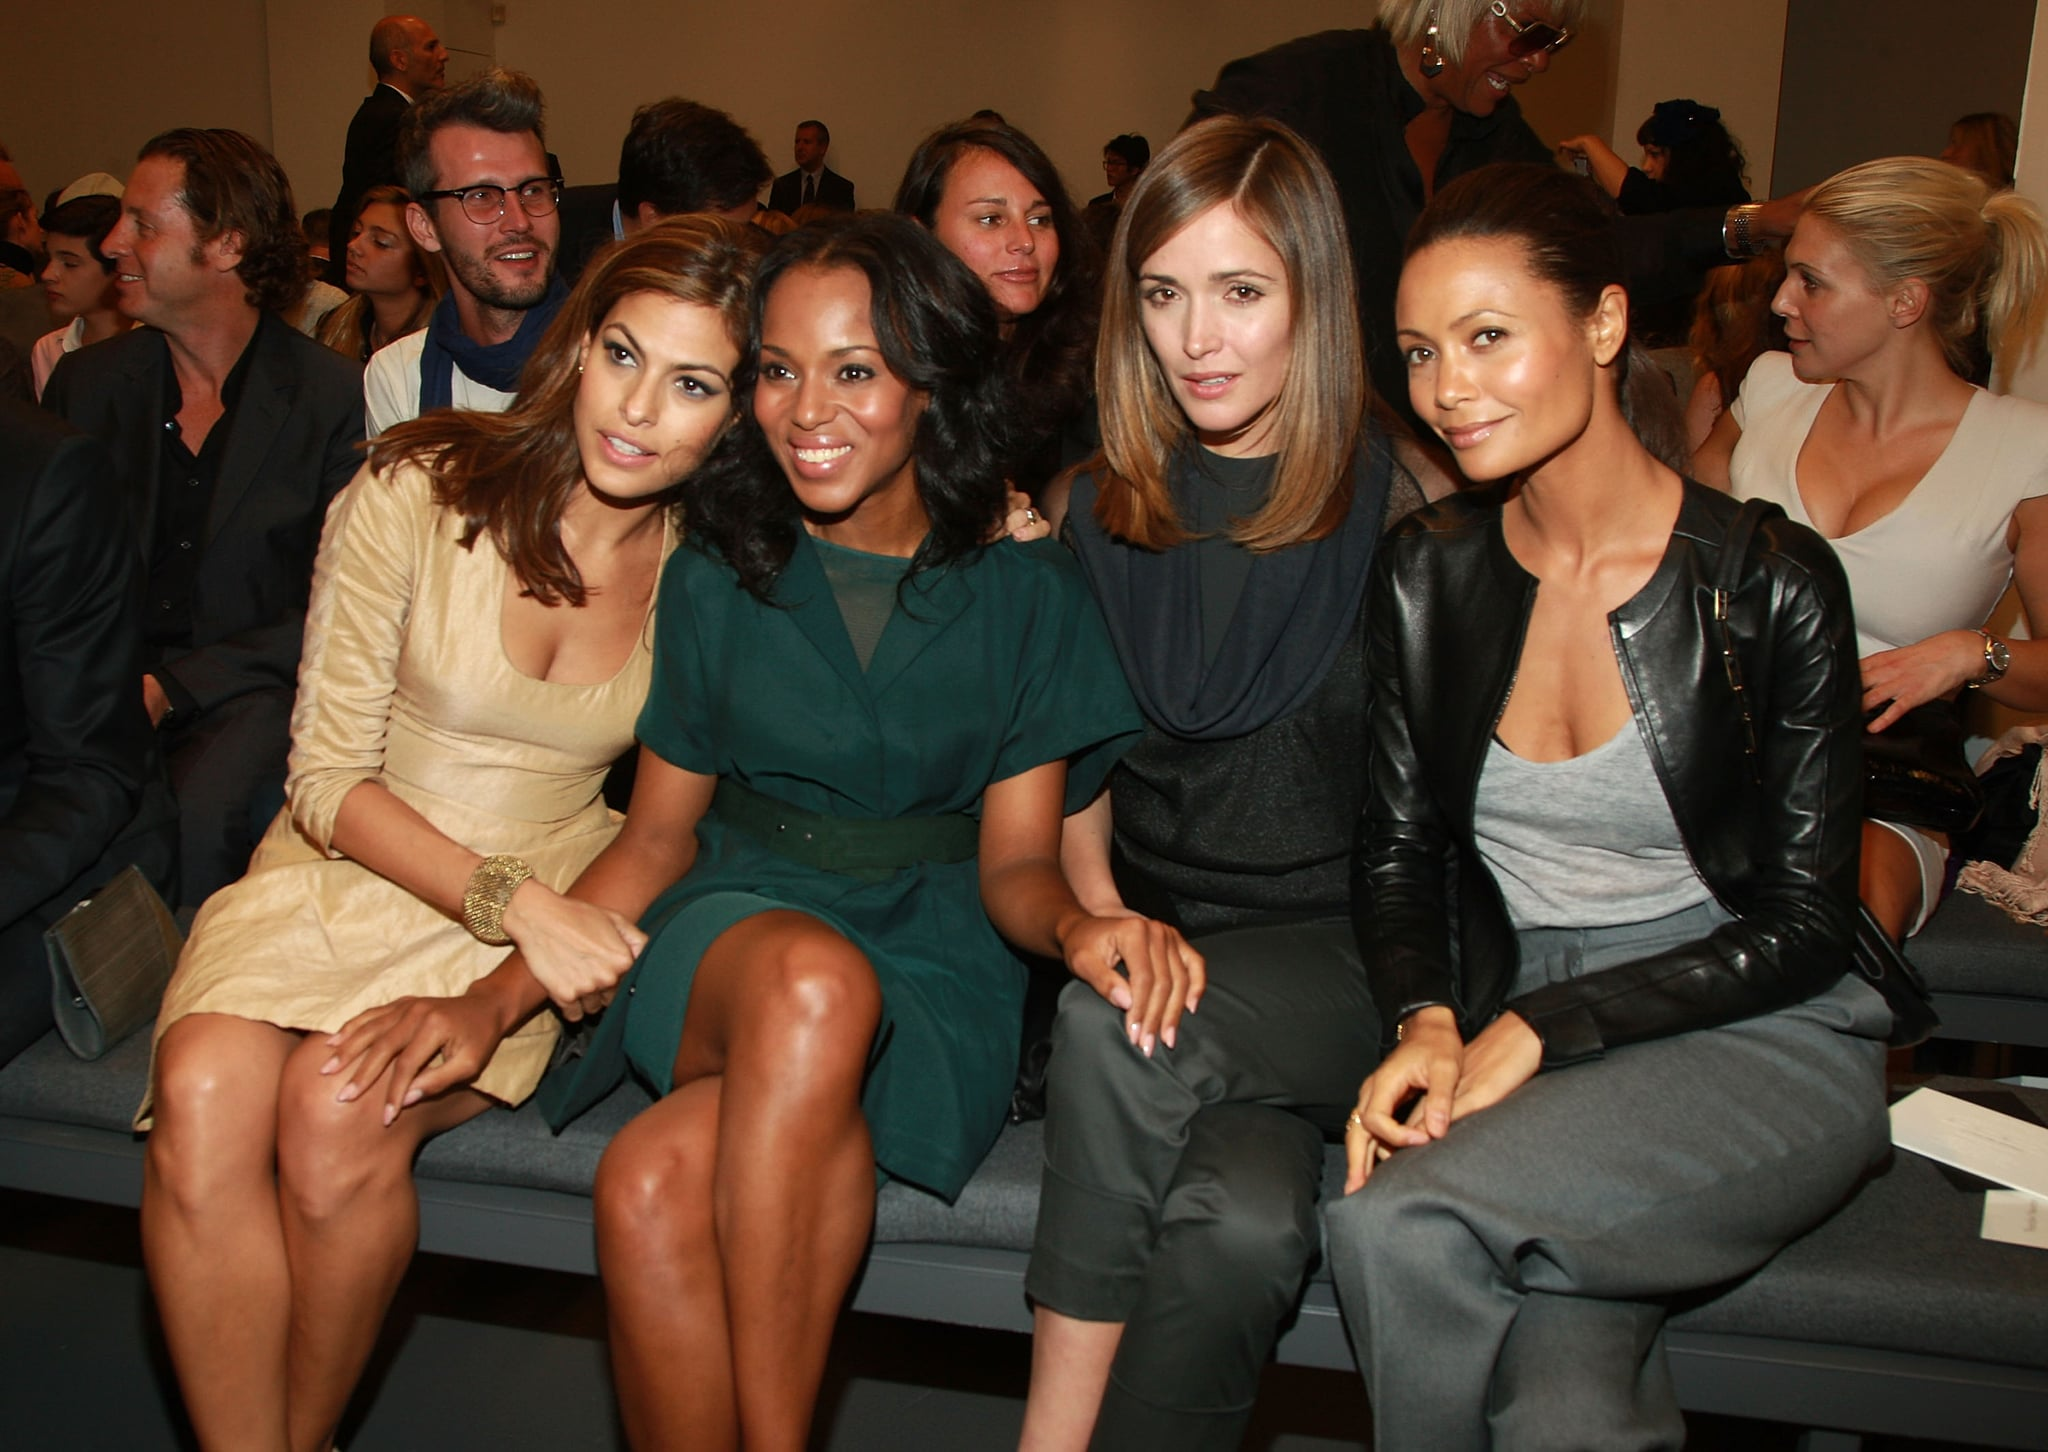 Eva Mendes, Kerry Washington, Rose Byrne, and Thandie Newton cozied up in September 2009 to see Calvin Klein's NYC show.